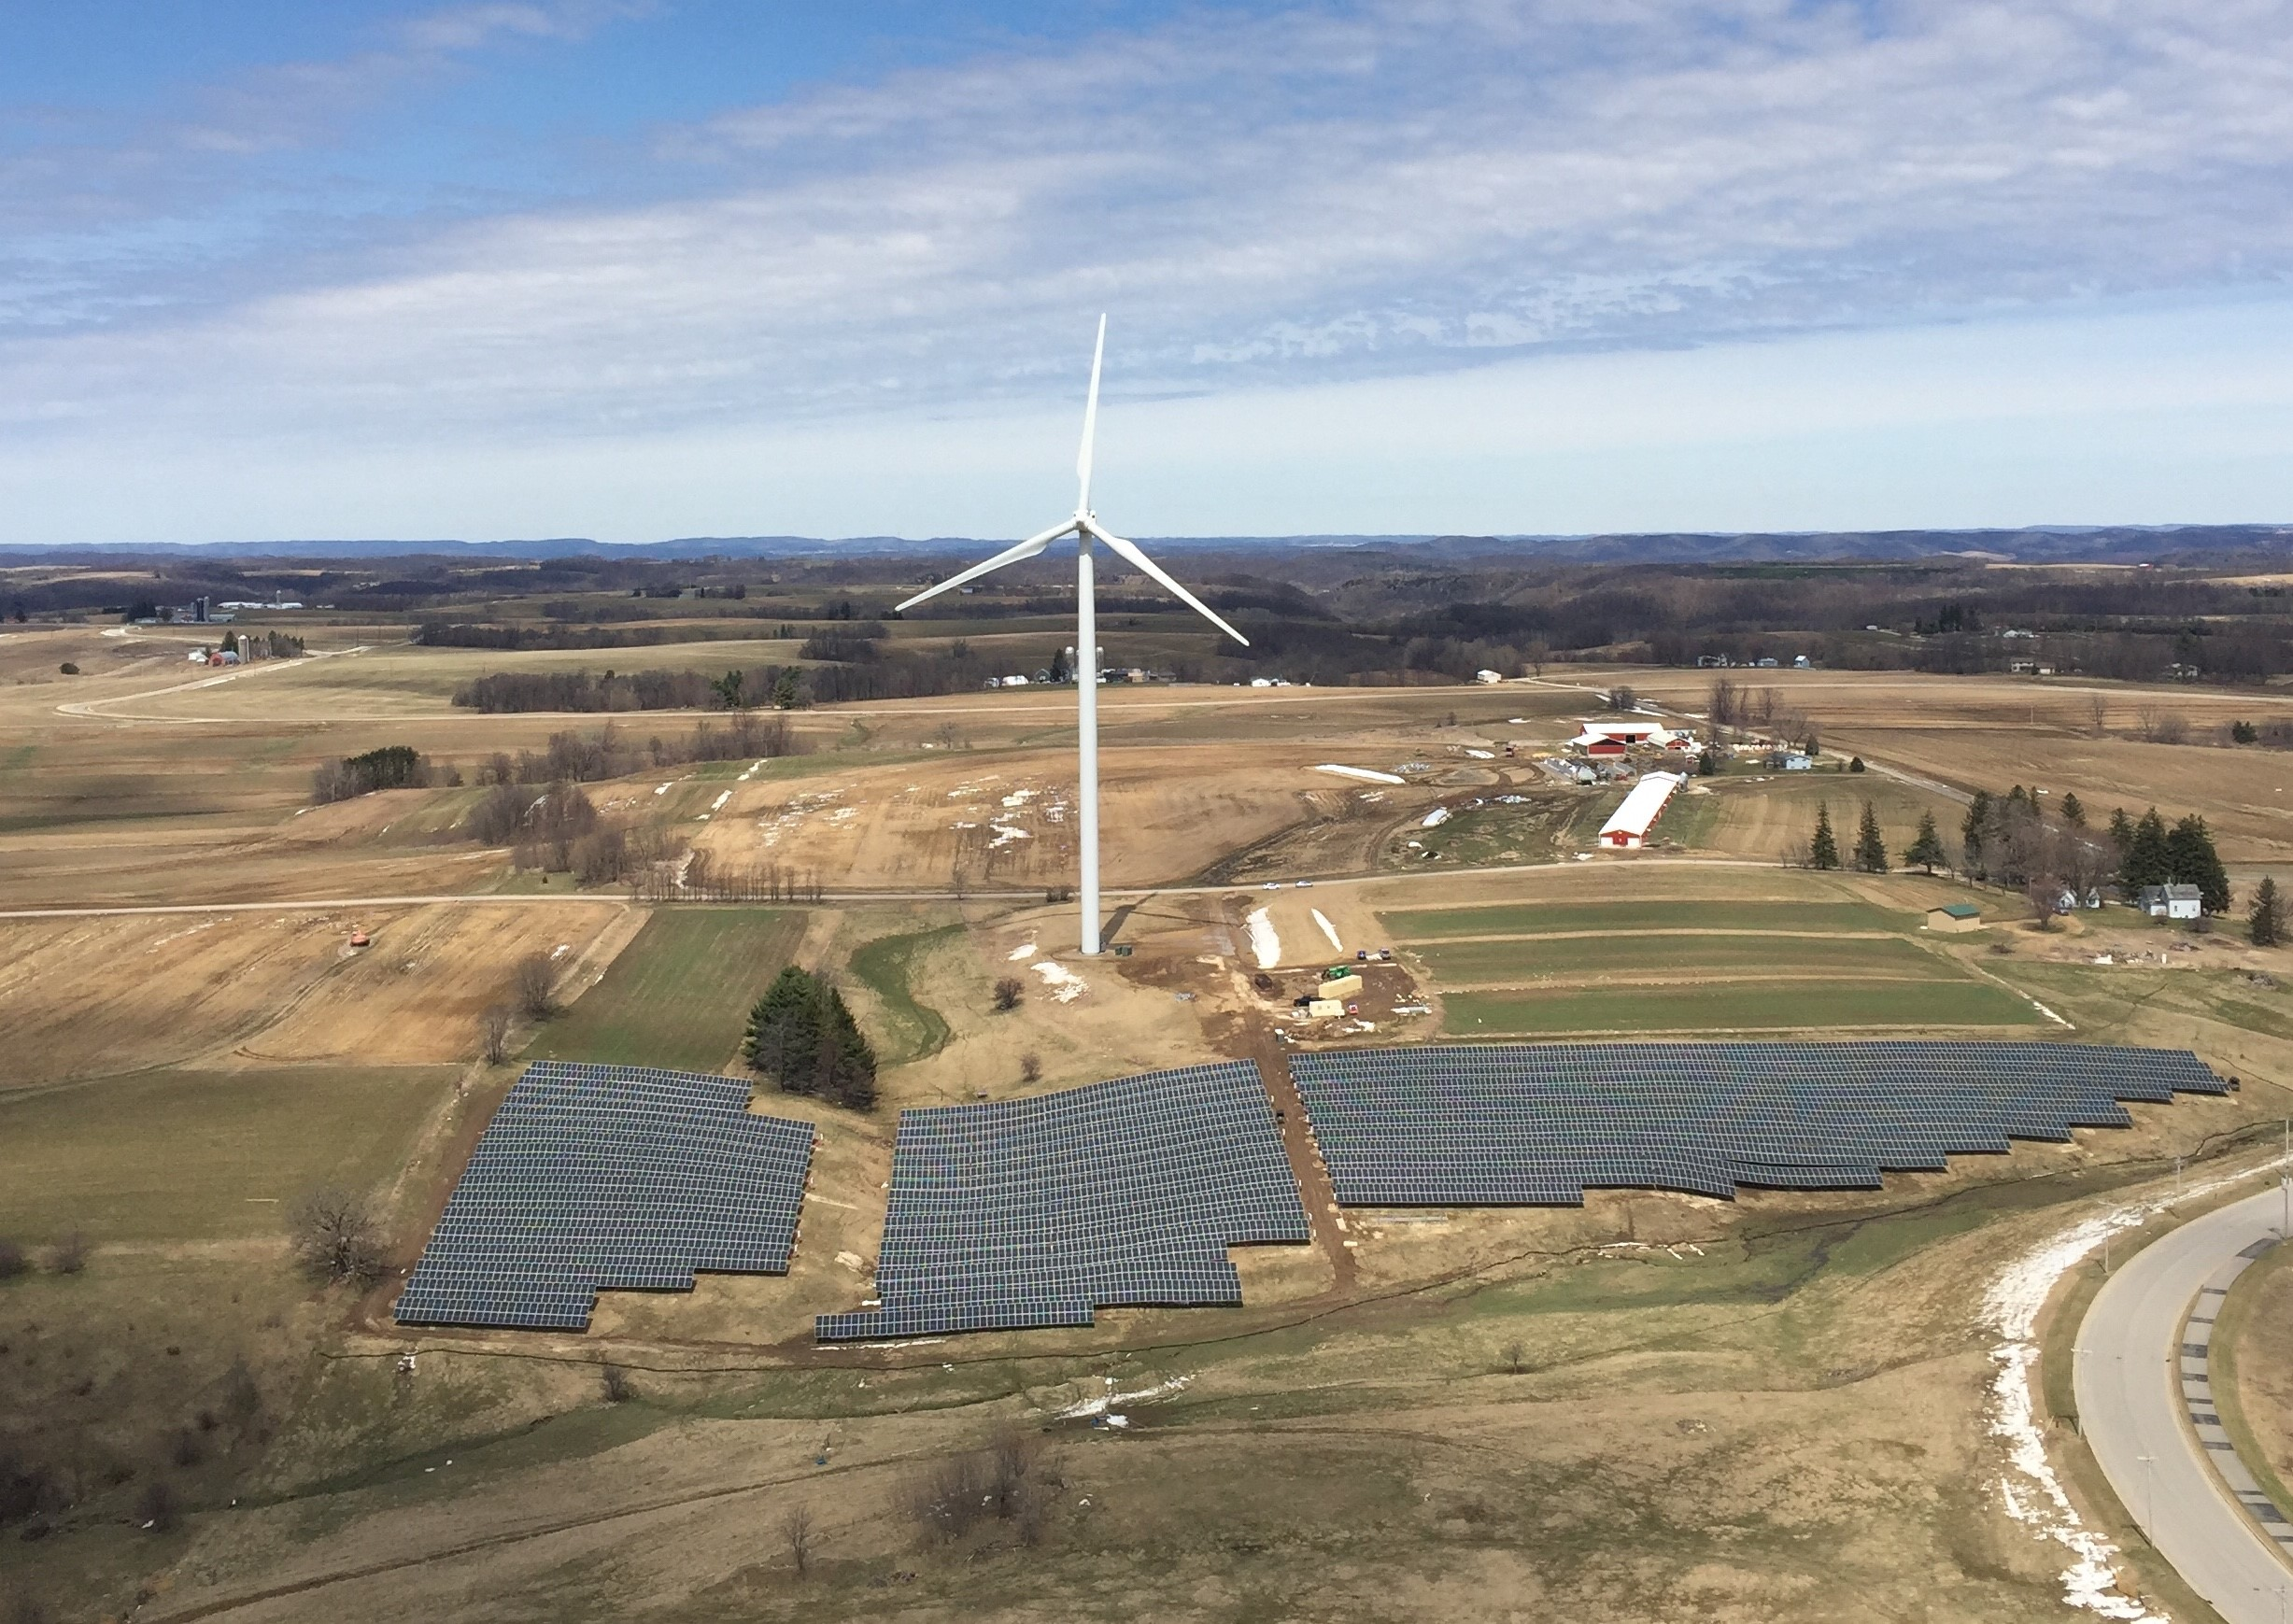 An aerial view of solar panels arrayed underneath a white wind turbine with brown ground and a little snow.